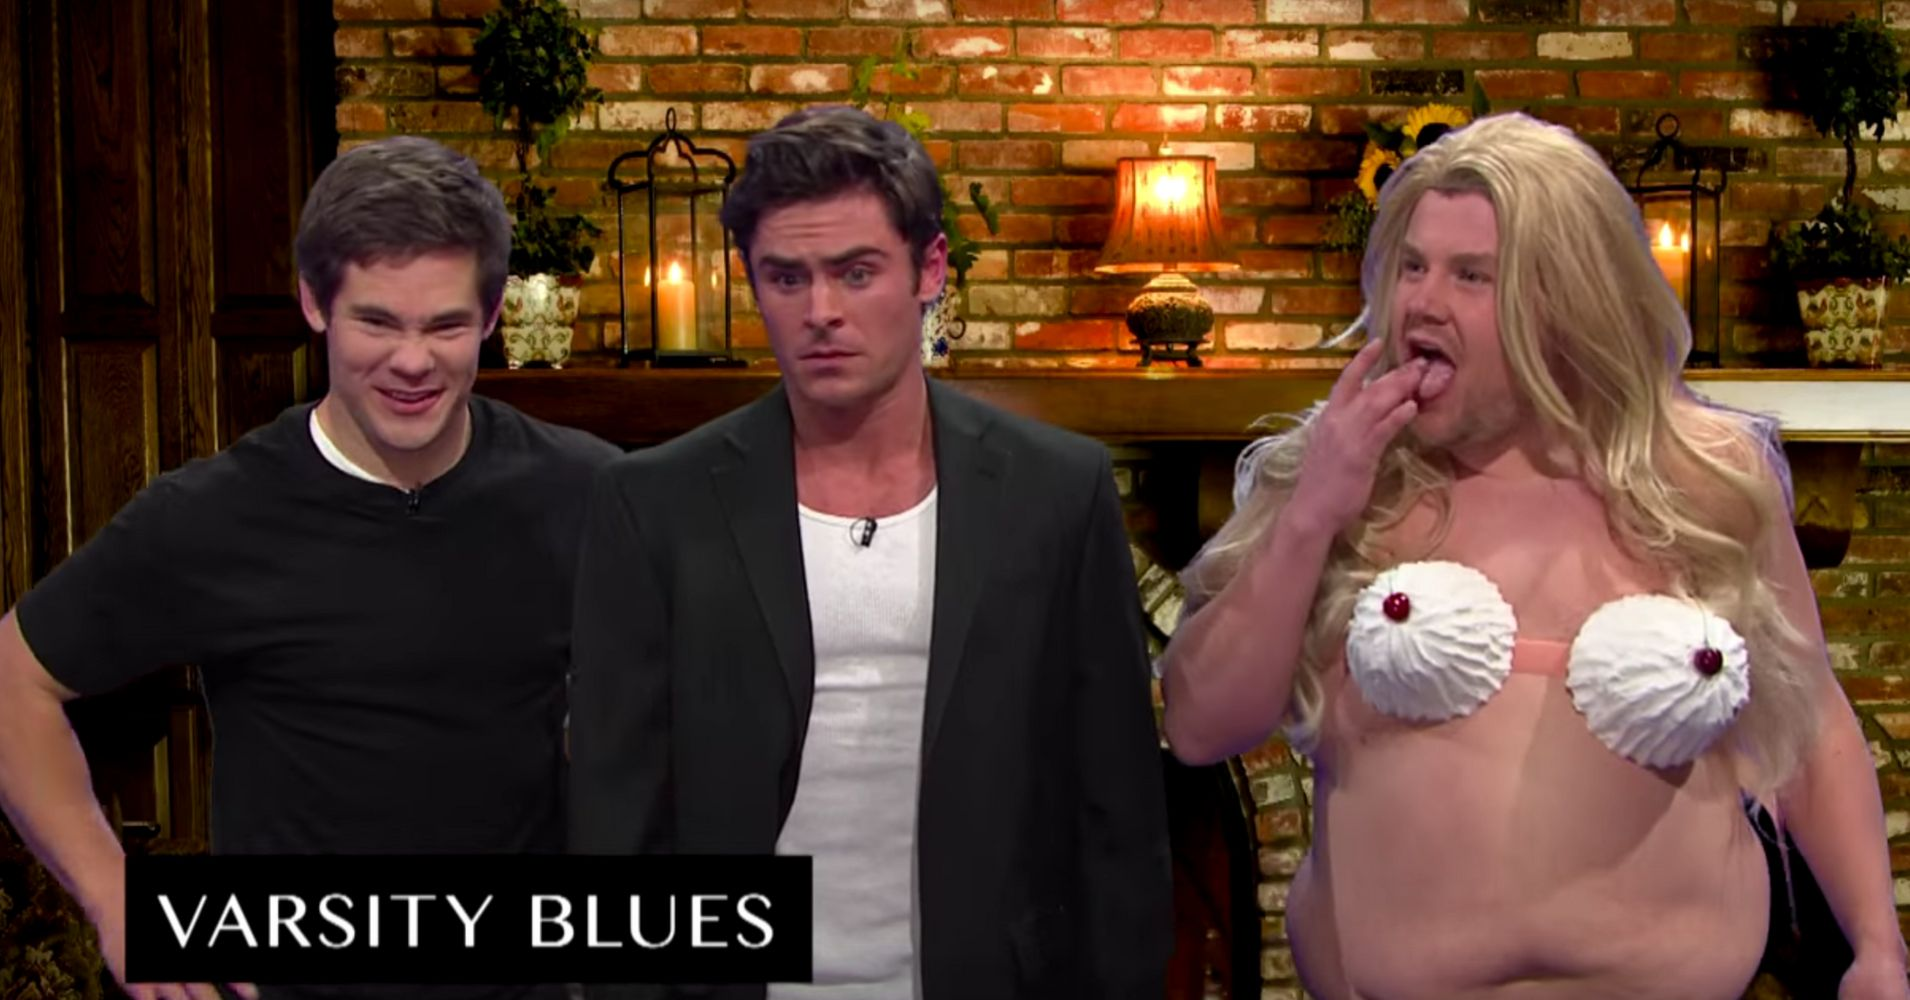 James Corden Pays Homage To 'Varsity Blues' In Whipped ...